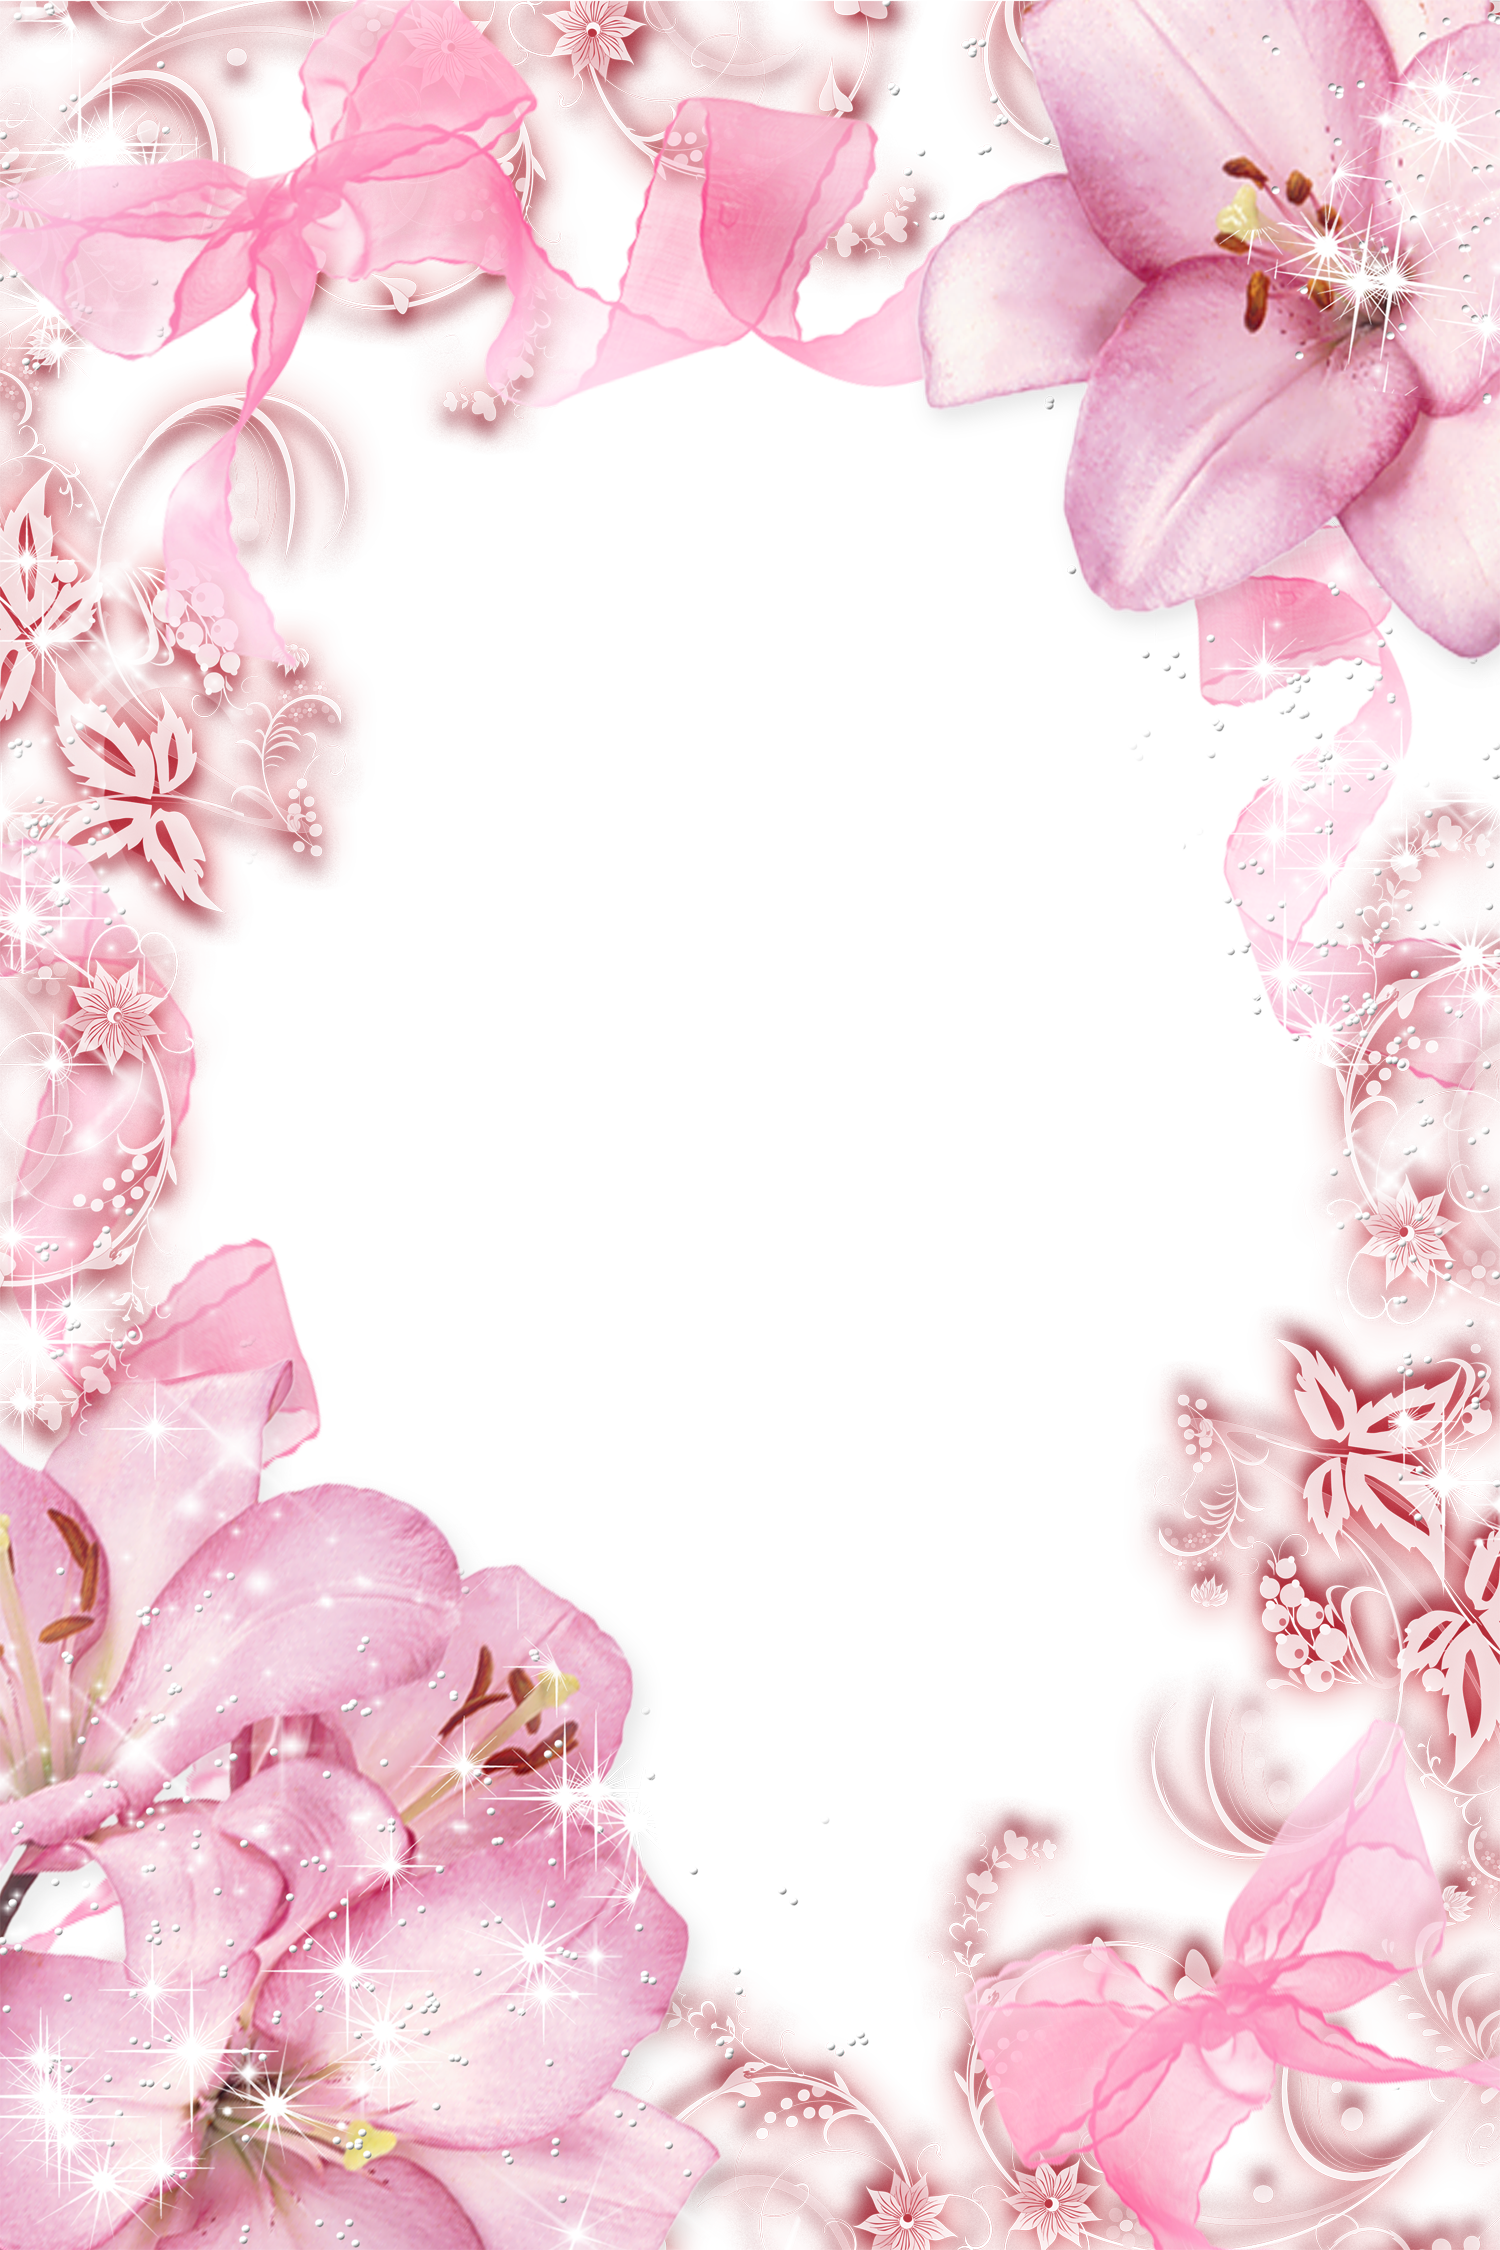 Transparent pink flowers png photo frame wallpapers and more transparent pink flowers png photo frame mightylinksfo Images